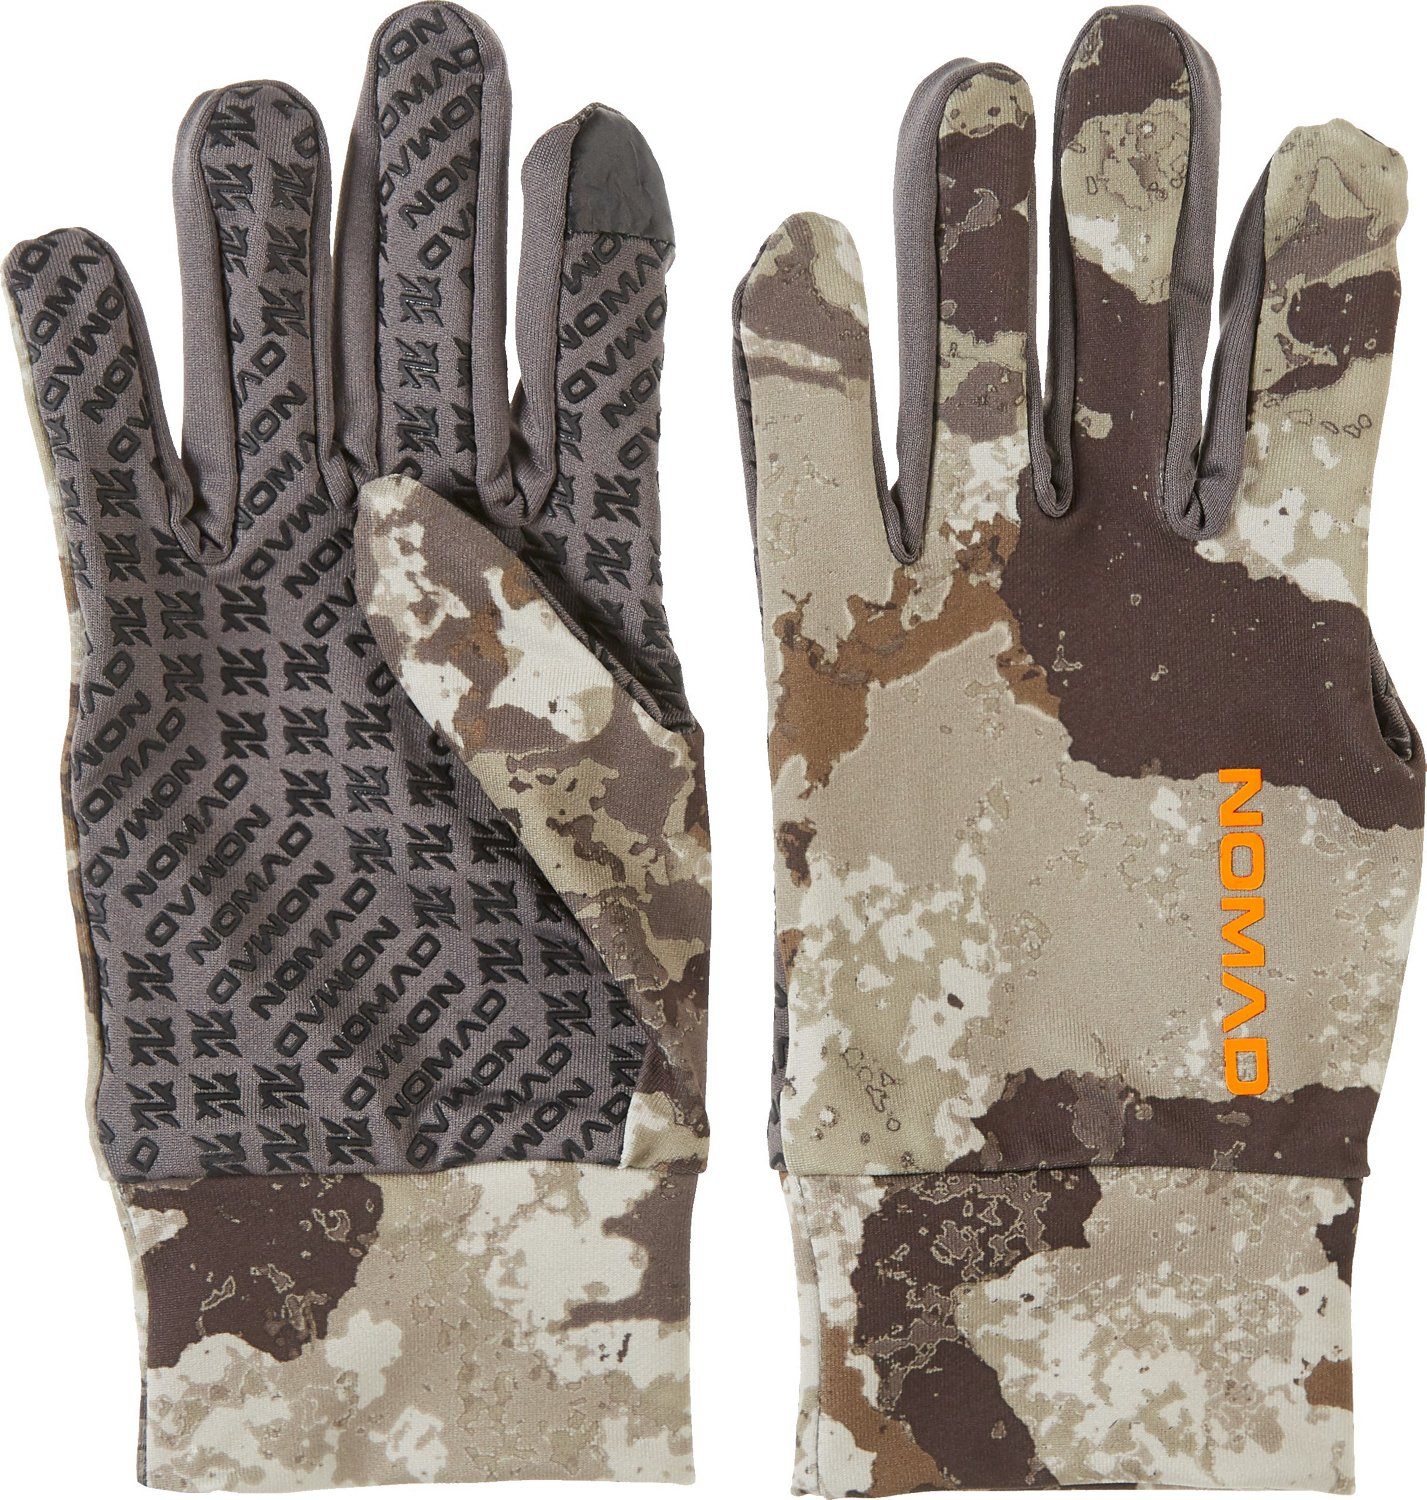 dec7f74acdae7 Nomad Men's Heartwood LVL 1 Liner Gloves | Academy